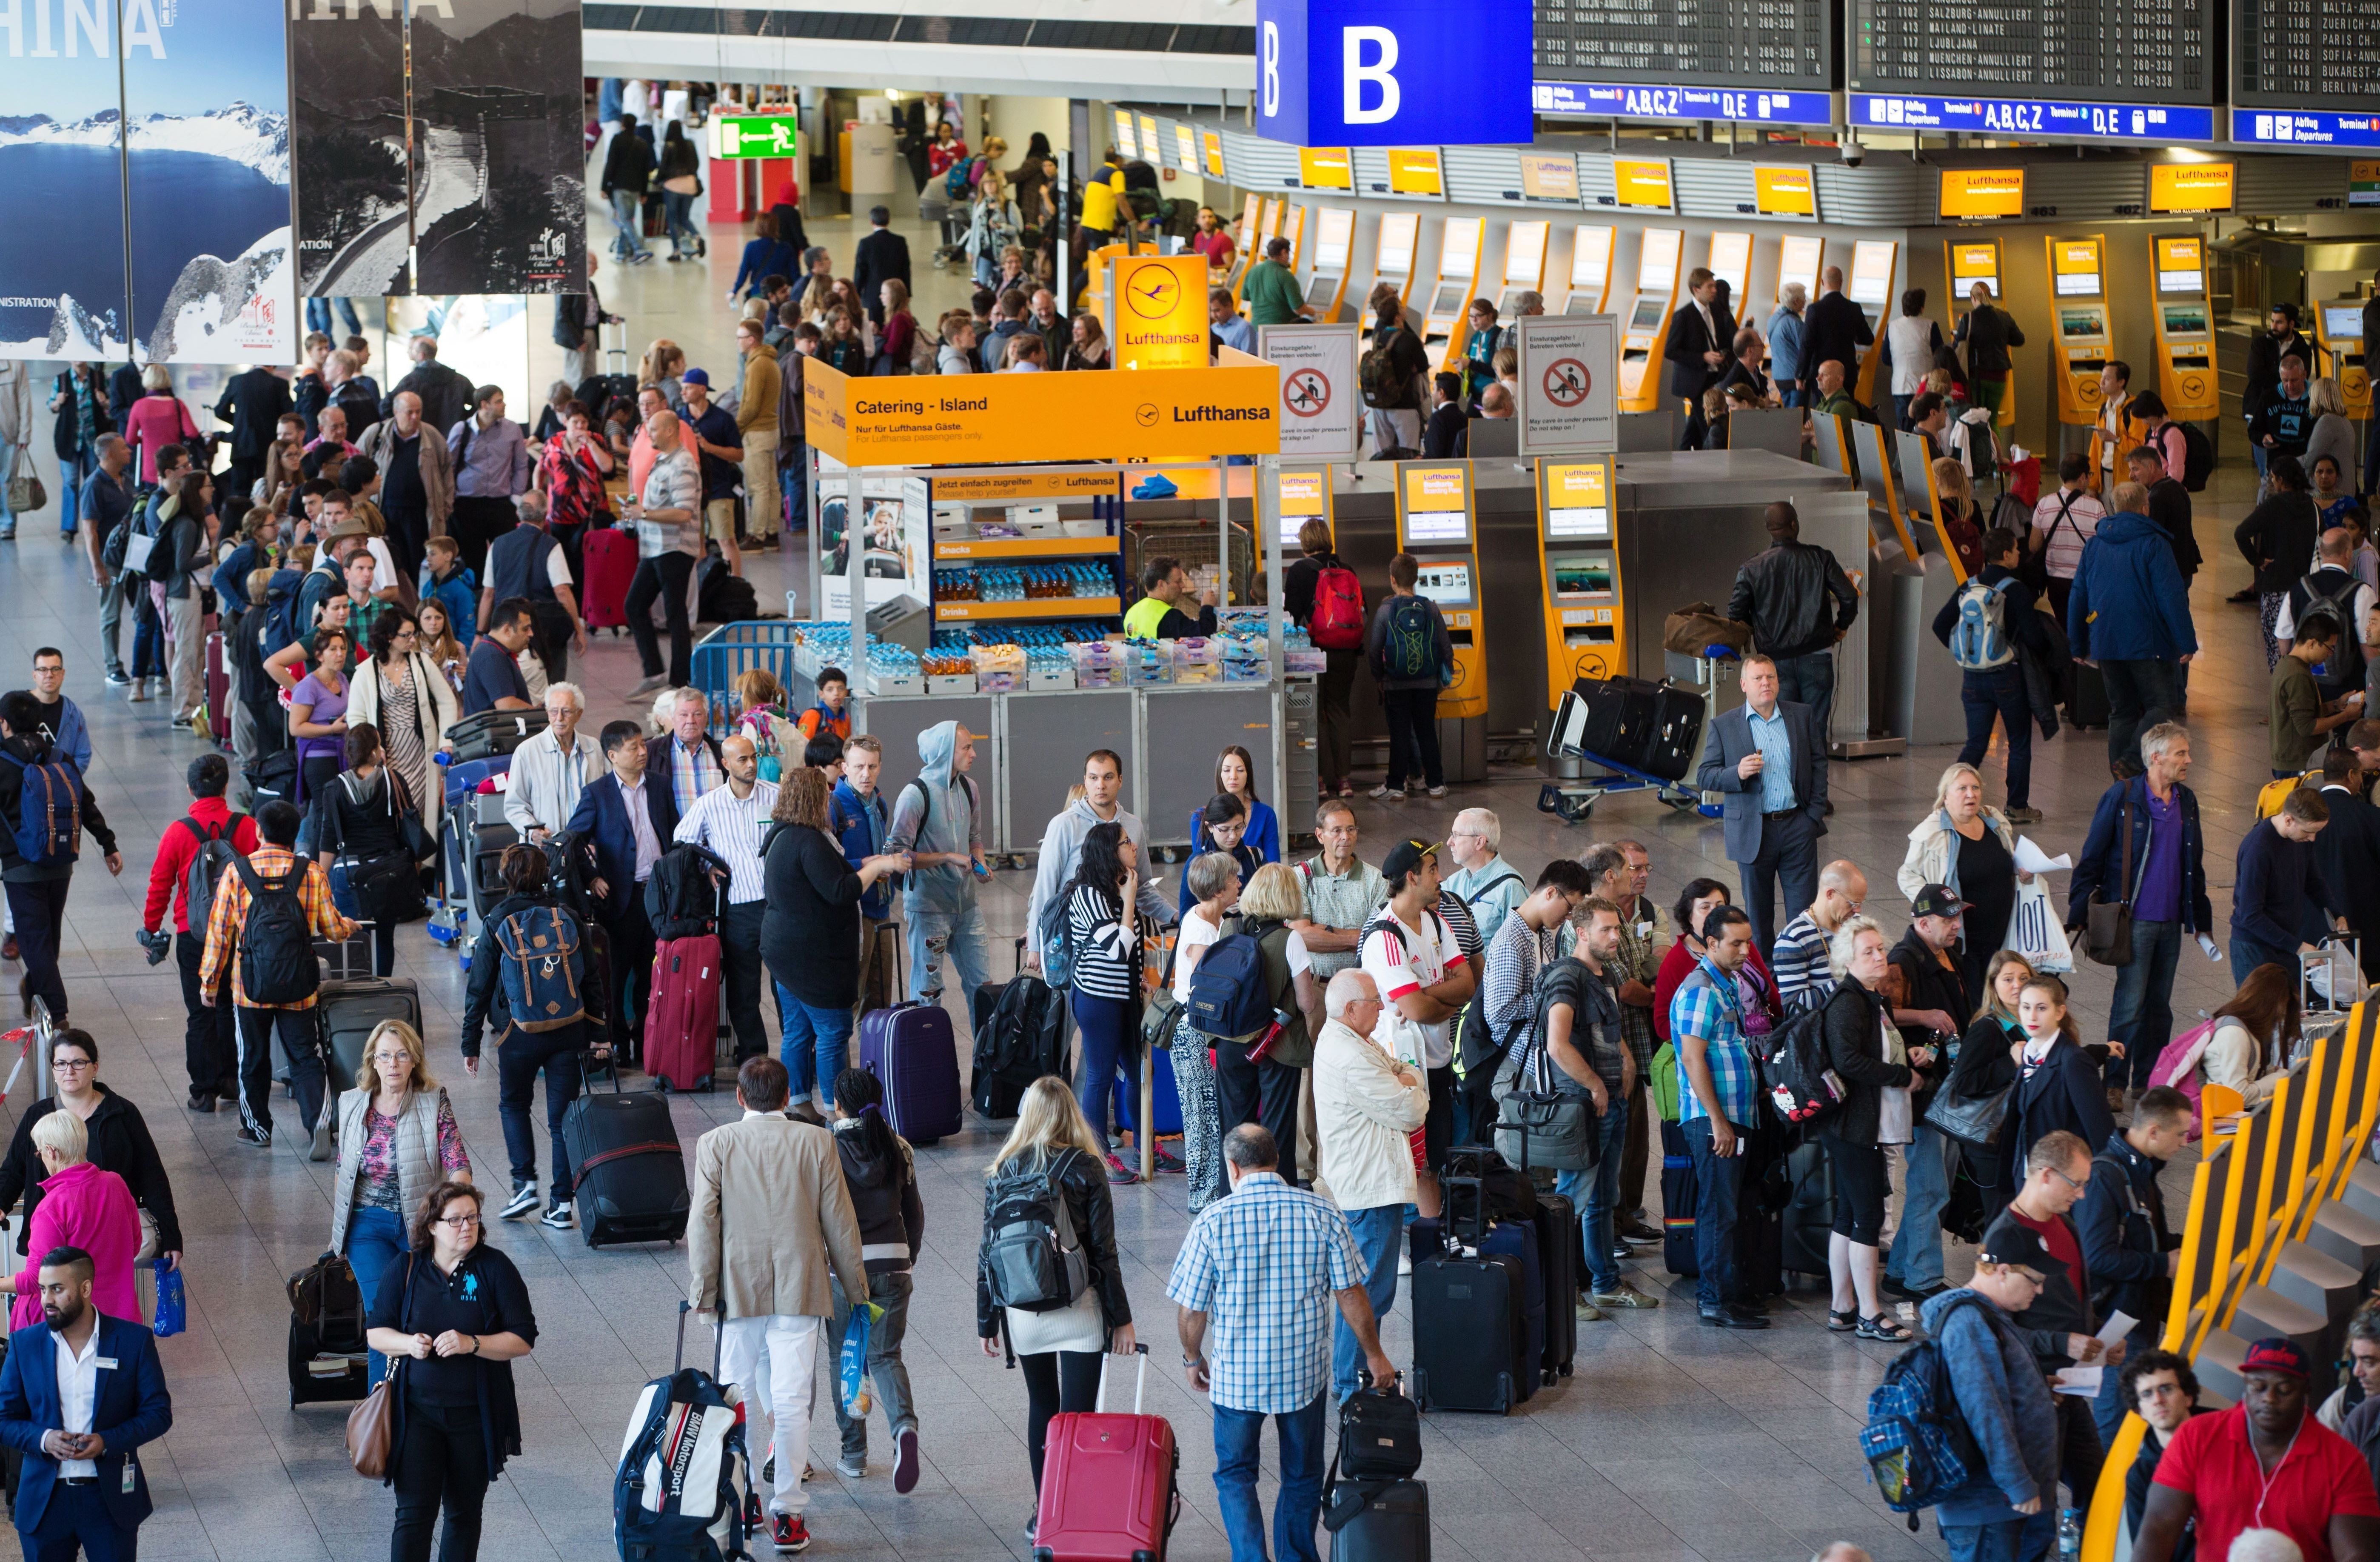 Passengers wait at counters during a strike of pilots of German airline Lufthansa at the airport in Frankfurt am Main, western Germany, on September 9, 2015. German airline Lufthansa announced to cancel 1,000 short- and medium-term flights to and from Germany on September 9, 2015, on the second day of a two-day walkout by its pilots.  AFP PHOTO / DPA / FRANK RUMPENHORST +++ GERMANY OUT        (Photo credit should read FRANK RUMPENHORST/AFP/Getty Images)